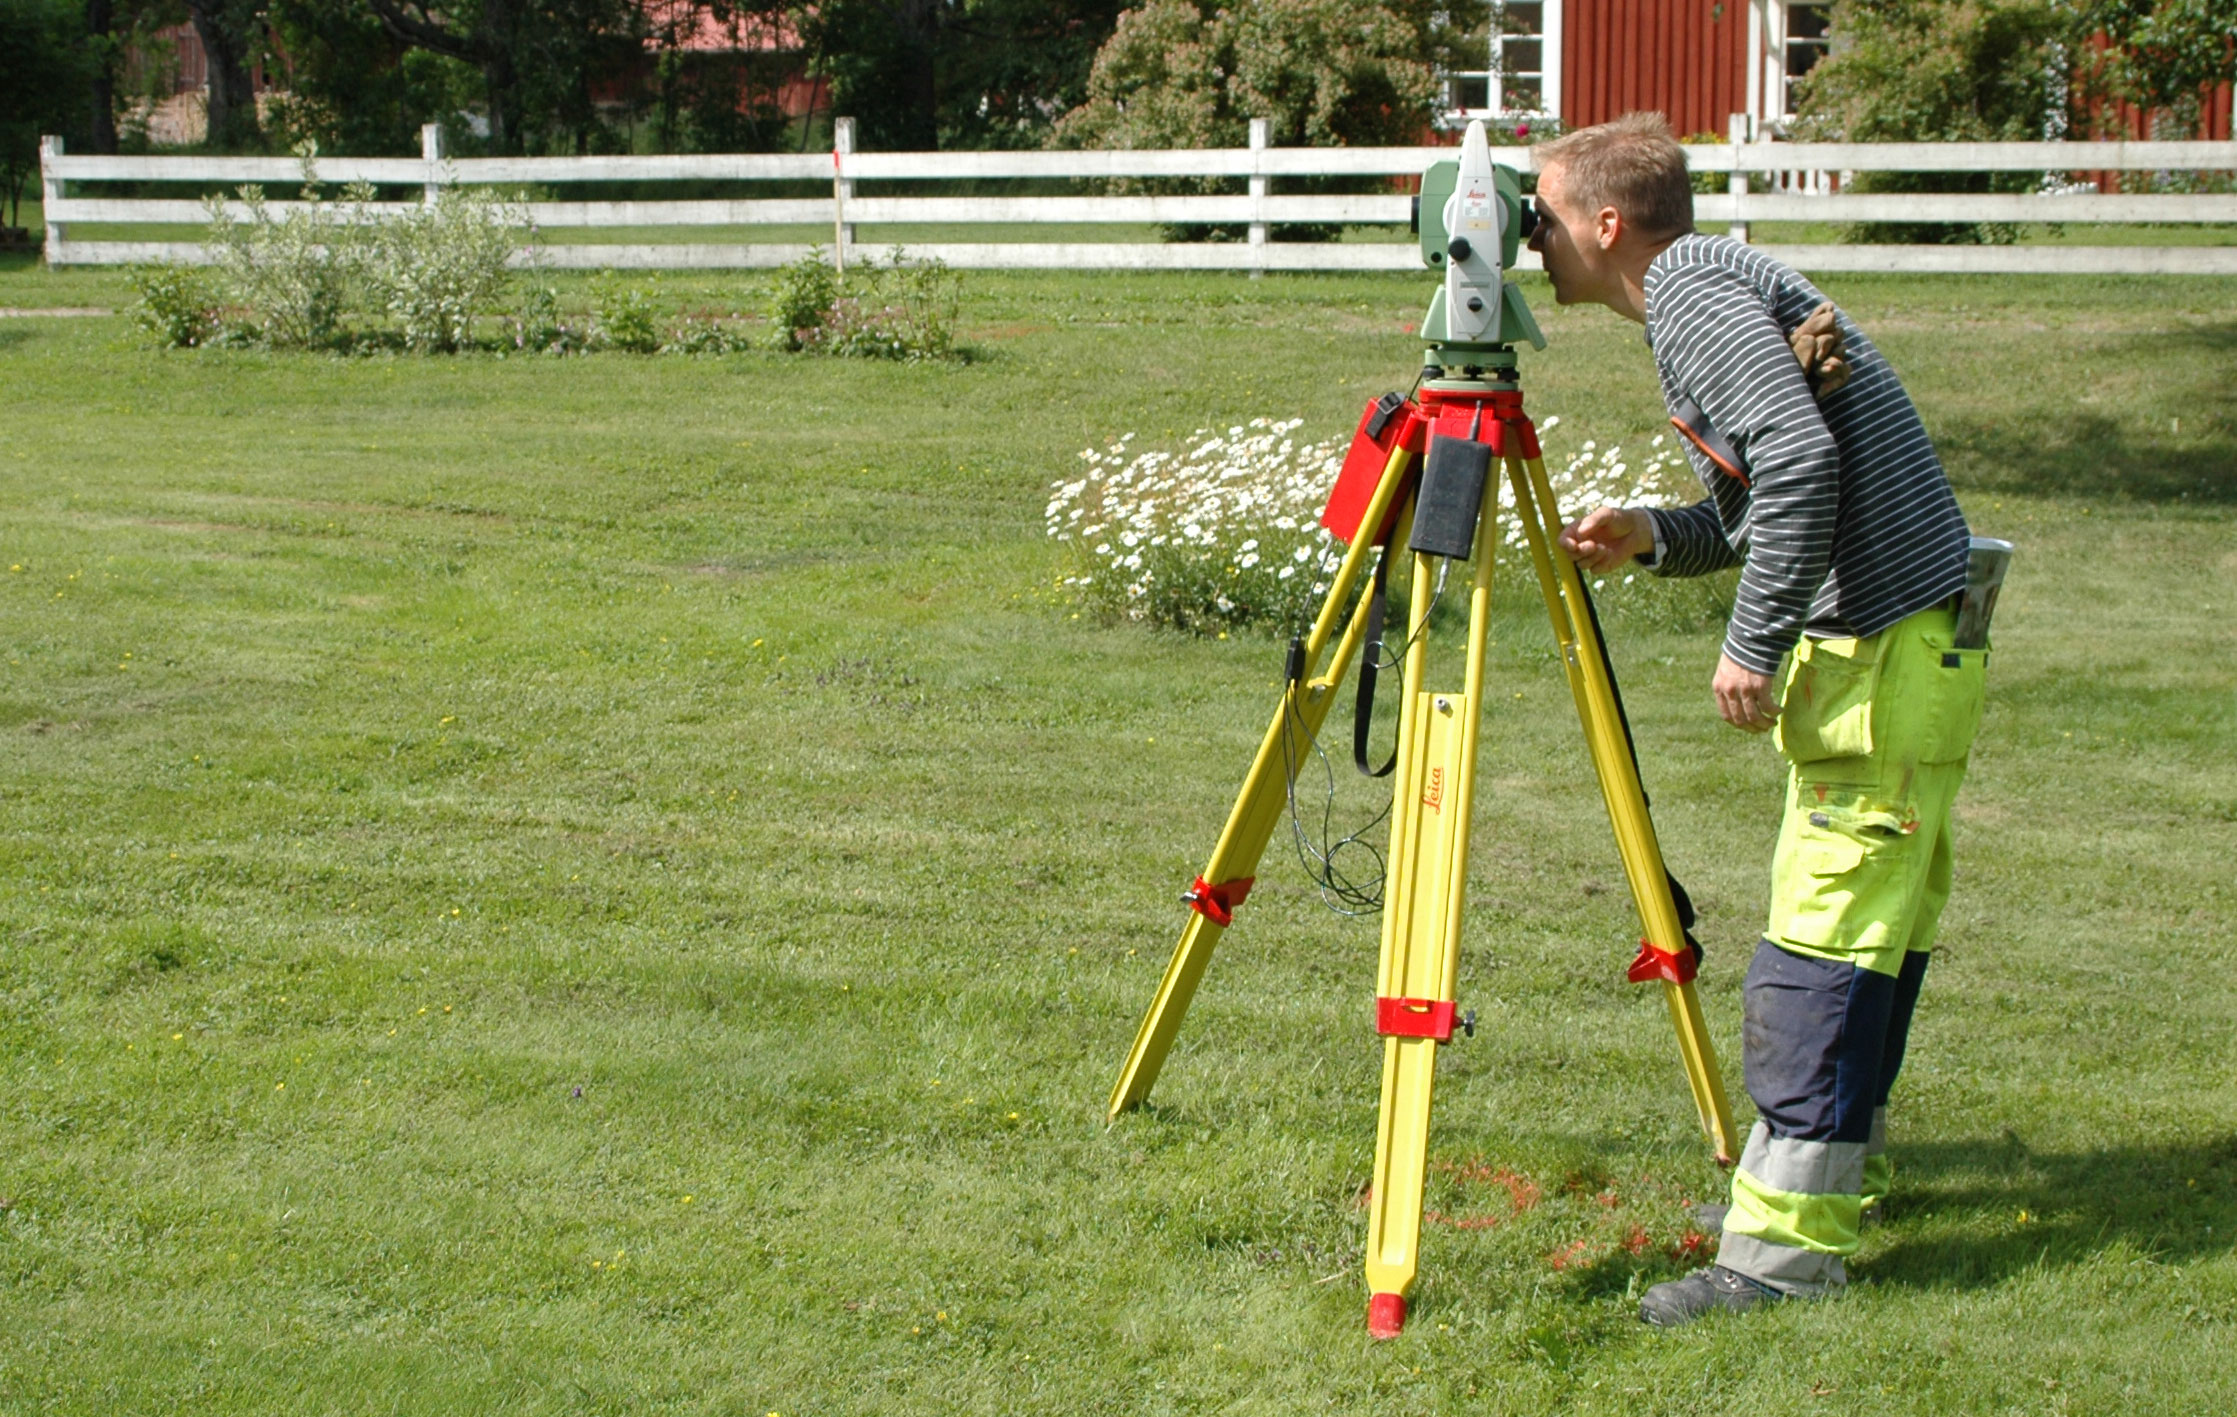 Mätning med totalstation.